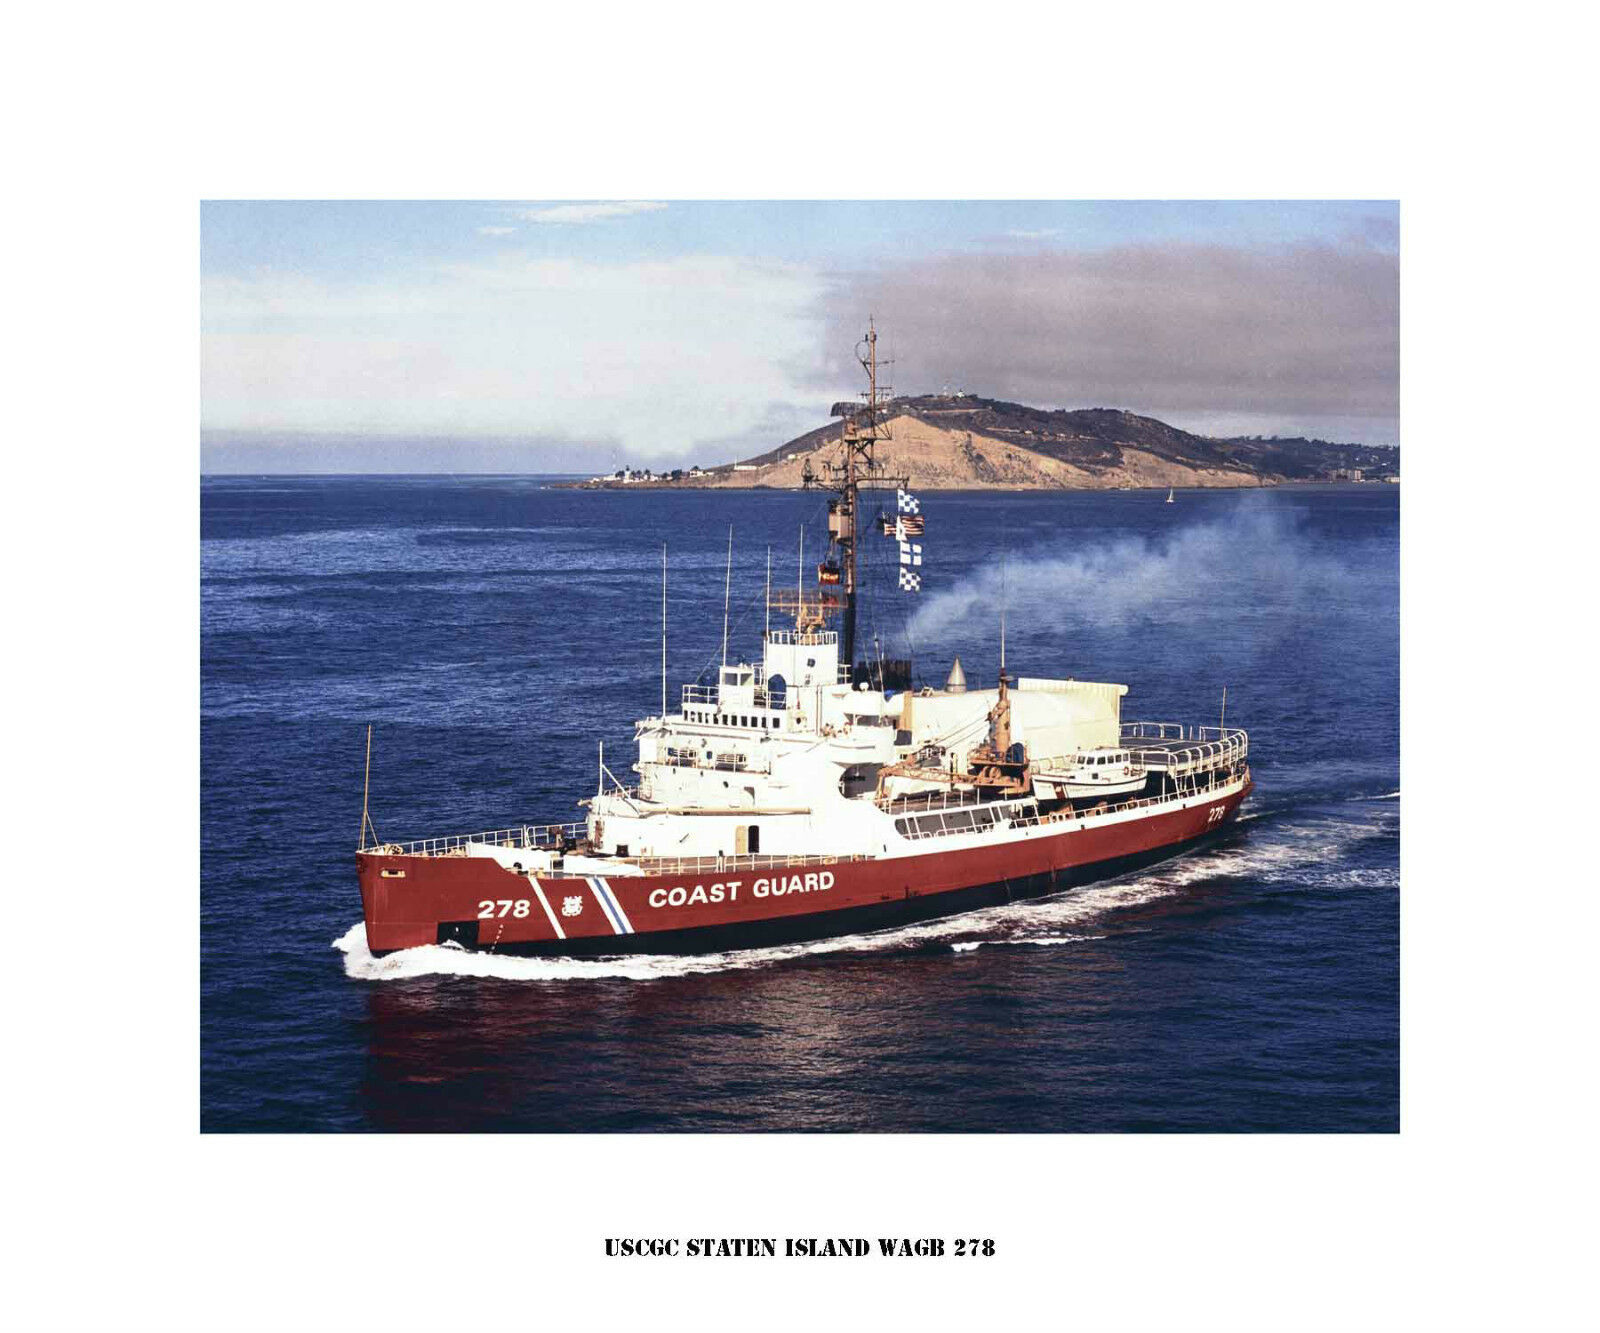 USCGC Staten Island WAGB 278 ---USCG, United States Coast Guard Ship Photo Drucken